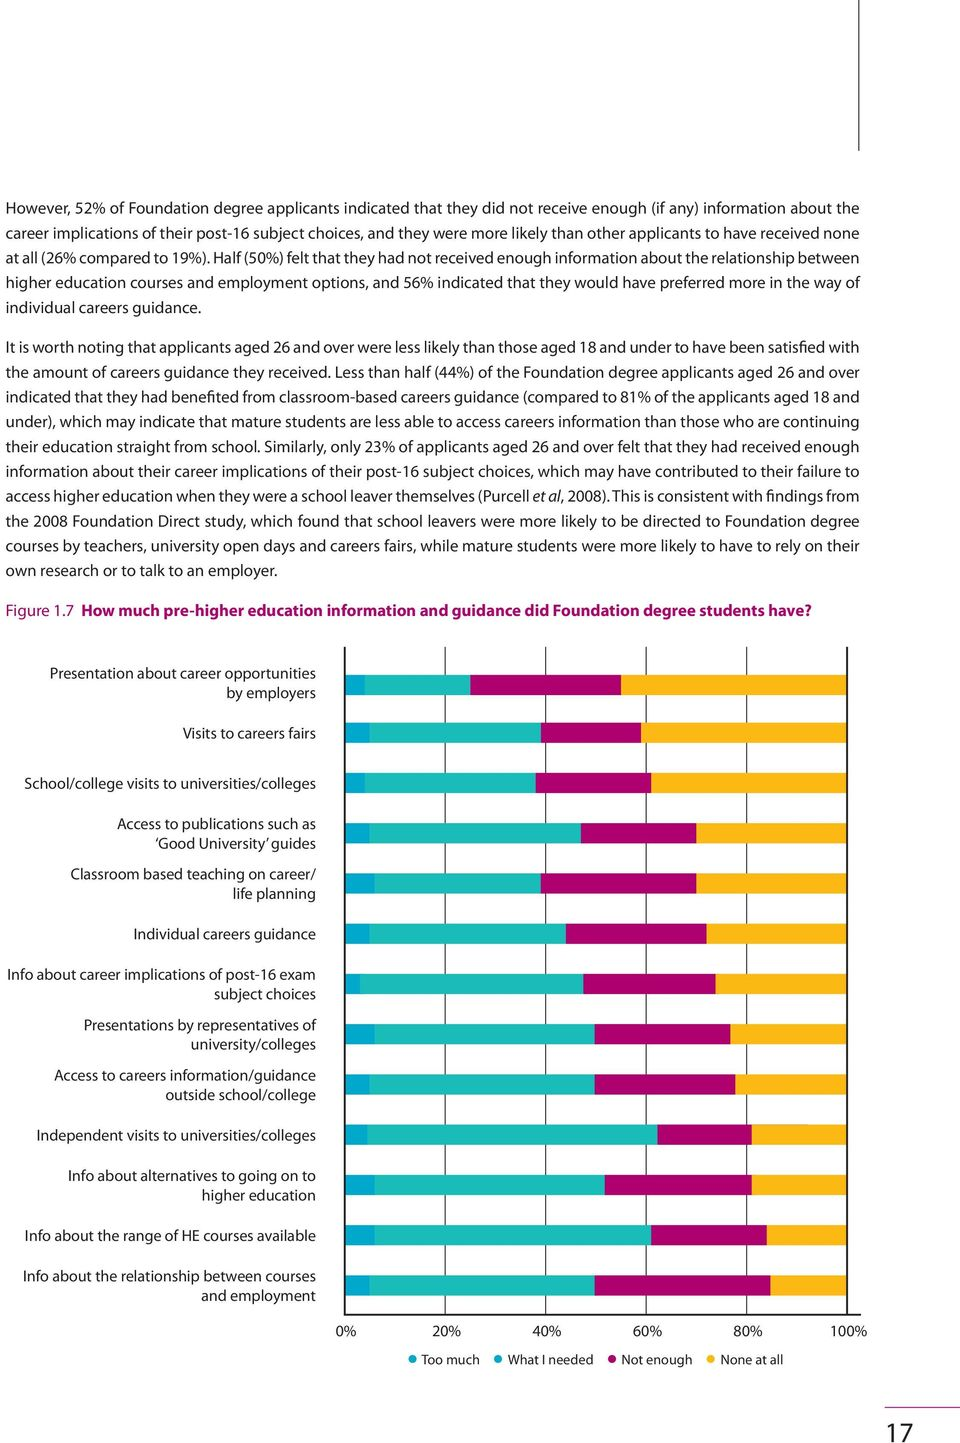 Half (50%) felt that they had not received enough information about the relationship between higher education courses and employment options, and 56% indicated that they would have preferred more in